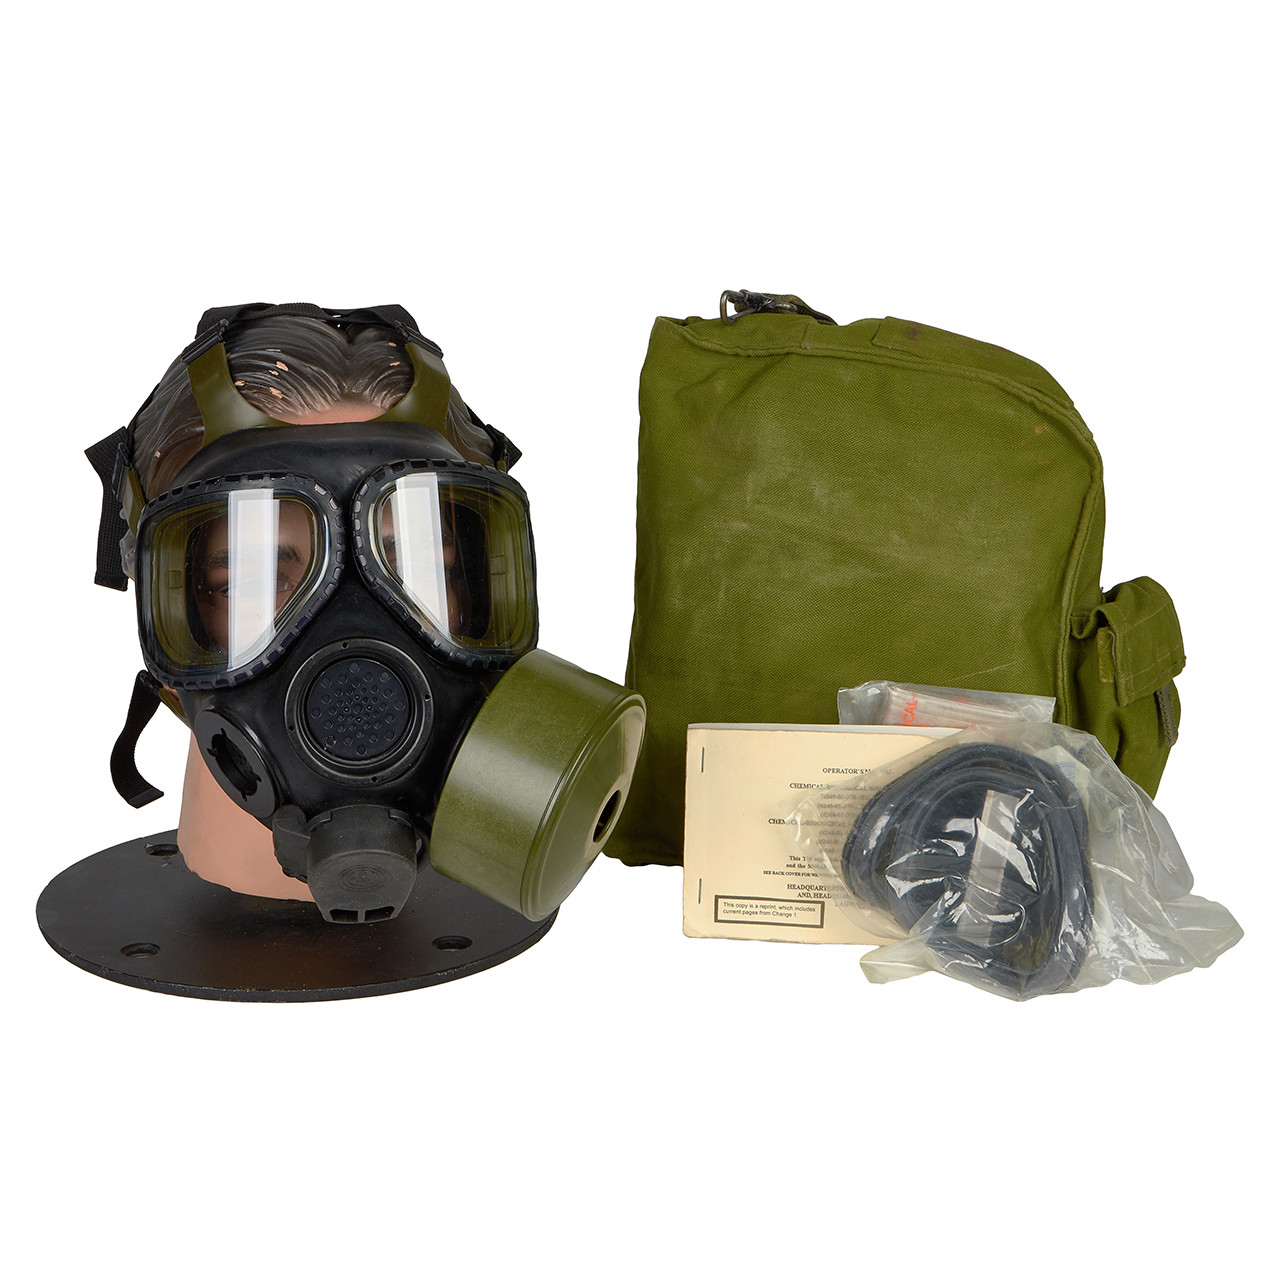 GM26 M40 SERIES G.I. ISSUE GAS MASK